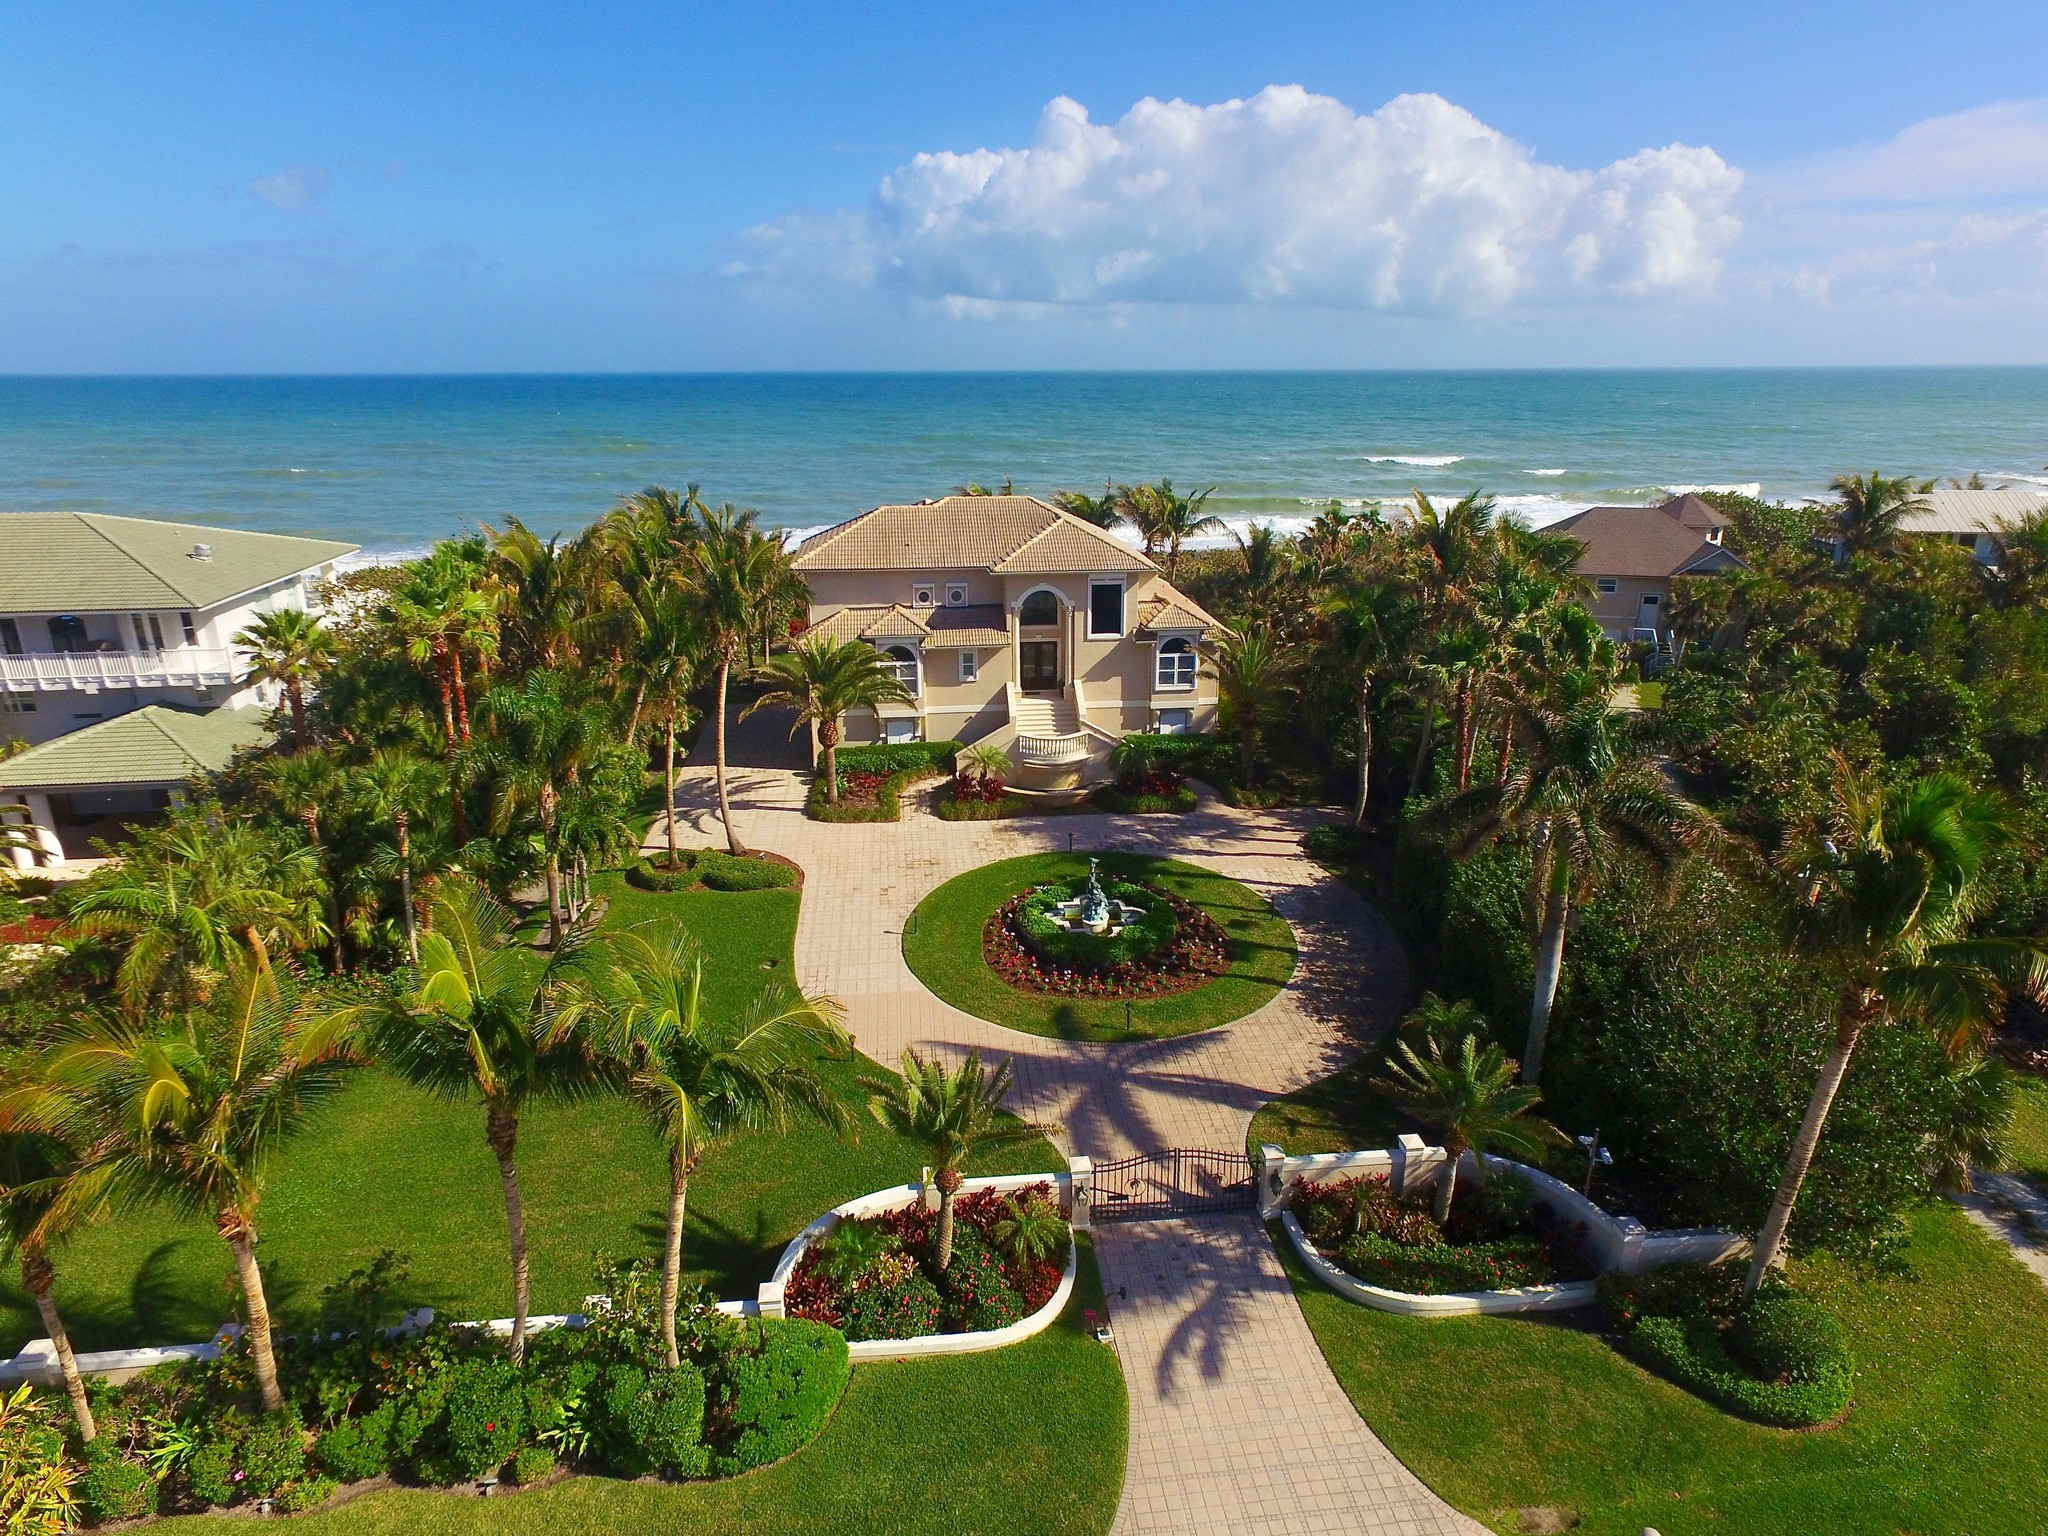 Moradia para Venda às Ocean To River Gated Oceanfront Estate 12440 Highway A1A Vero Beach, Florida, 32963 Estados Unidos